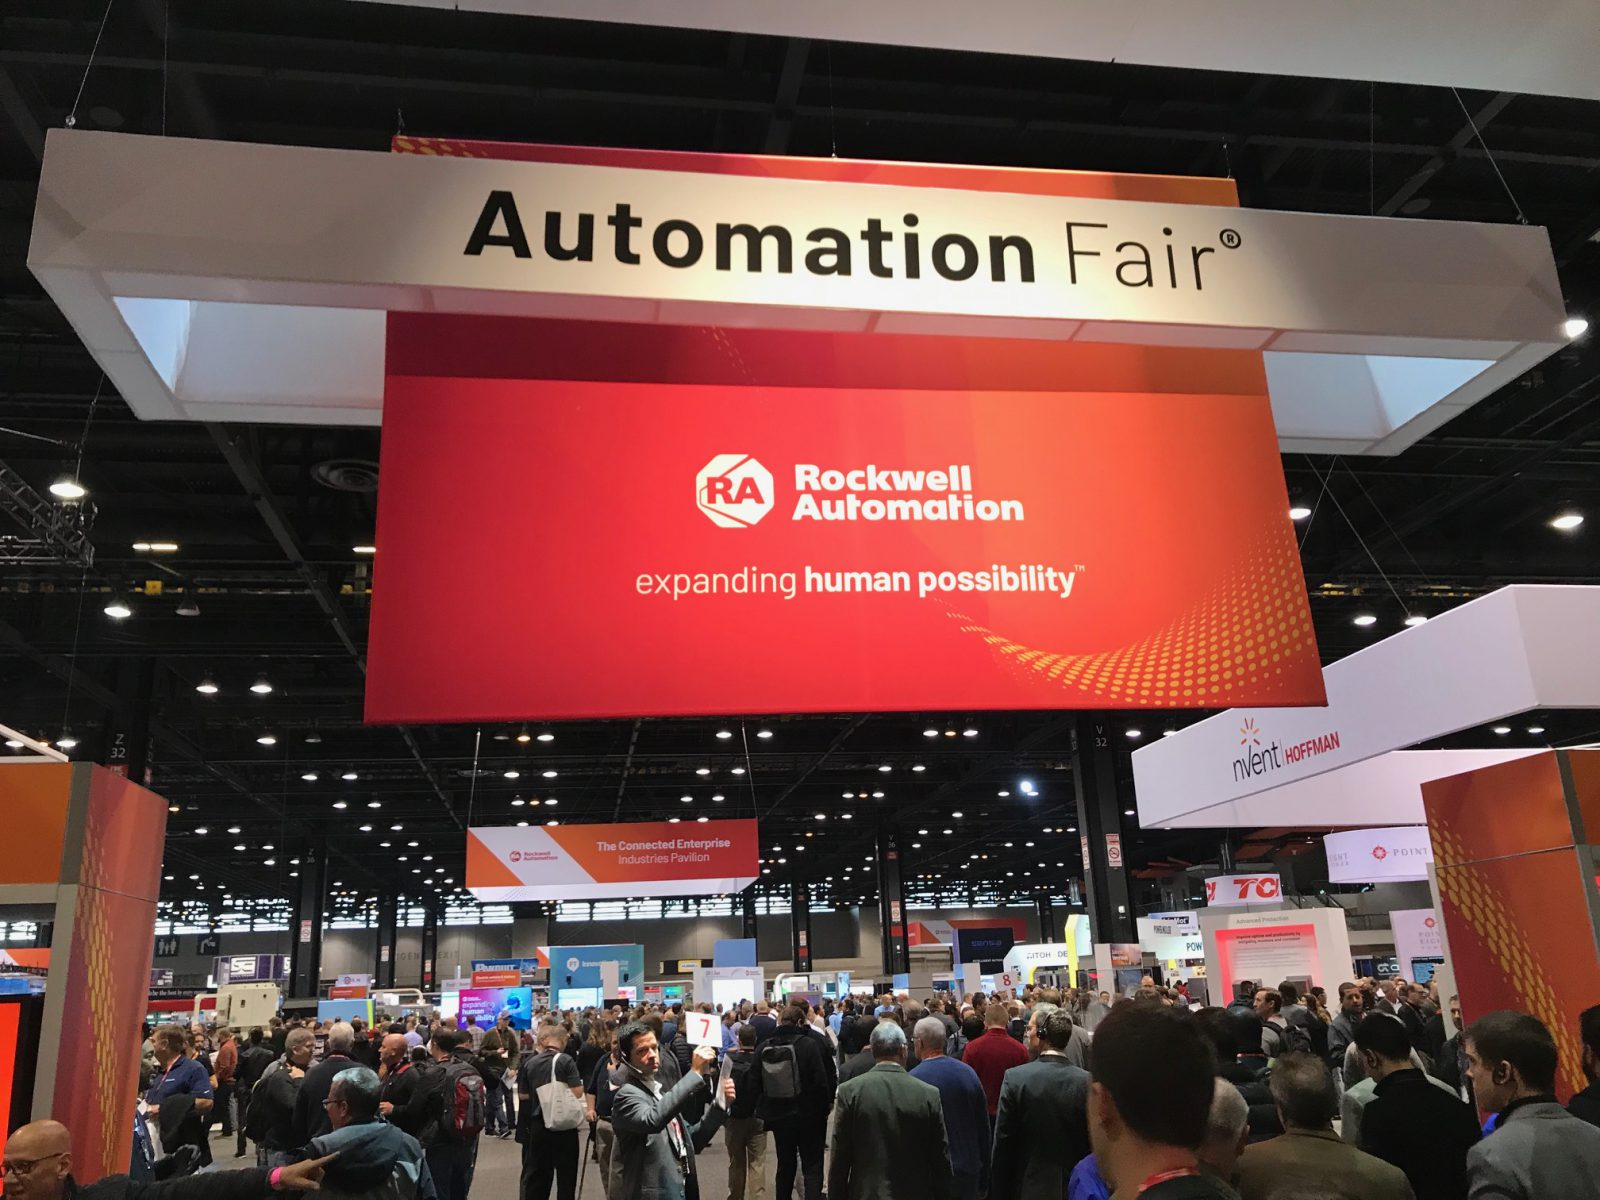 At Rockwell Automation, all eyes are on innovation and growth